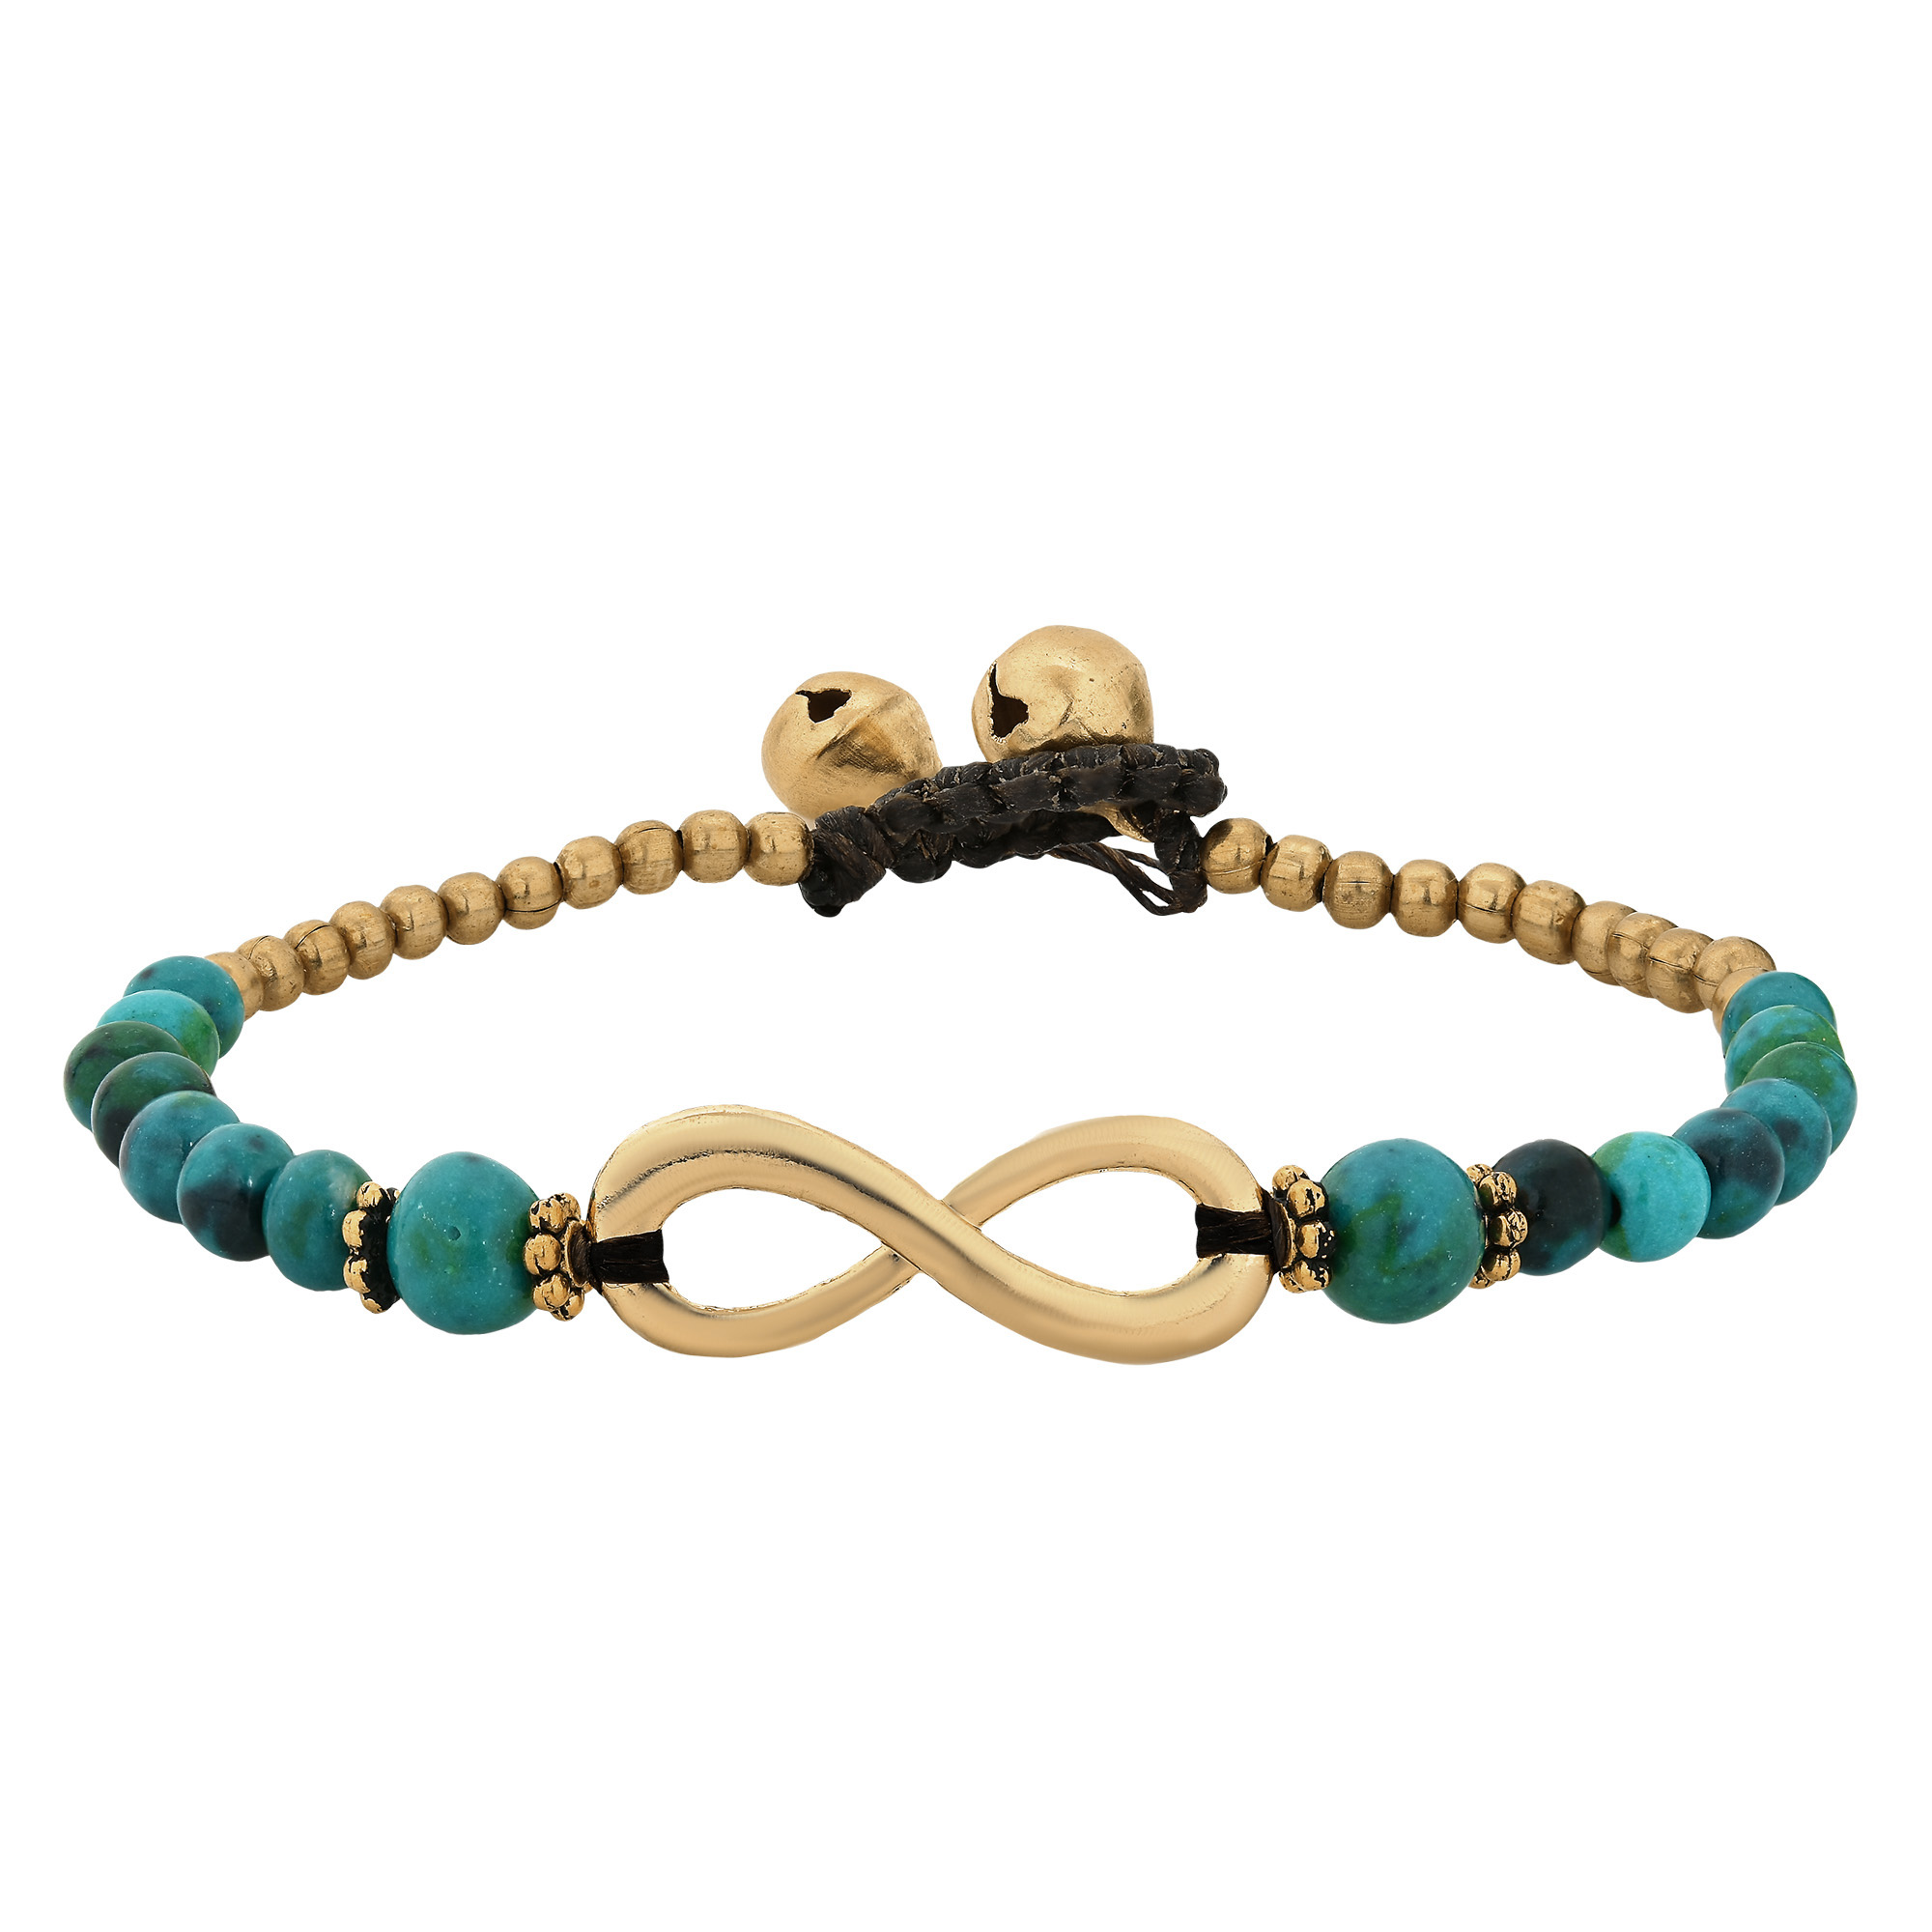 Beautiful infinity symbol with green malachite brass beads the beautiful meaning of the infinity symbol is that it represents eternity empowerment and everlasting love this amazing message has inspired thai biocorpaavc